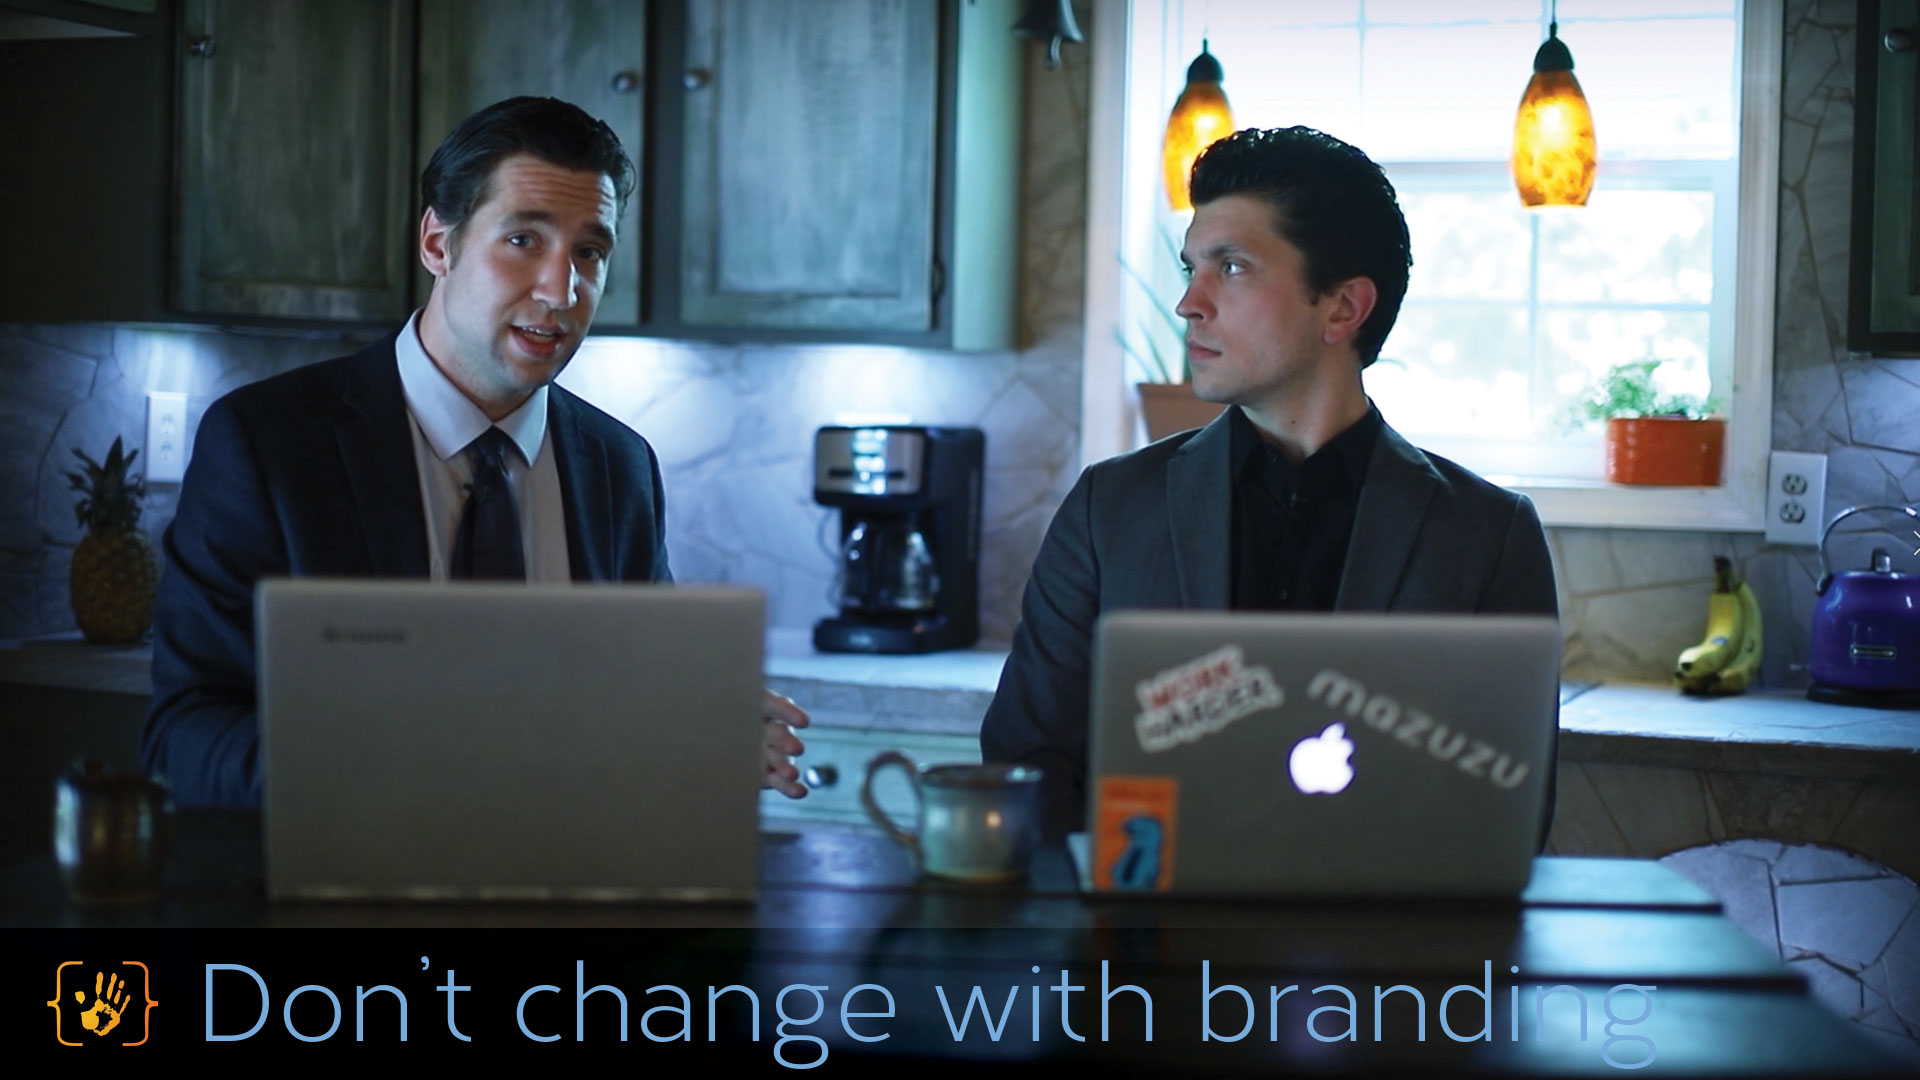 Watch Don't lose yourself while branding on Youtube